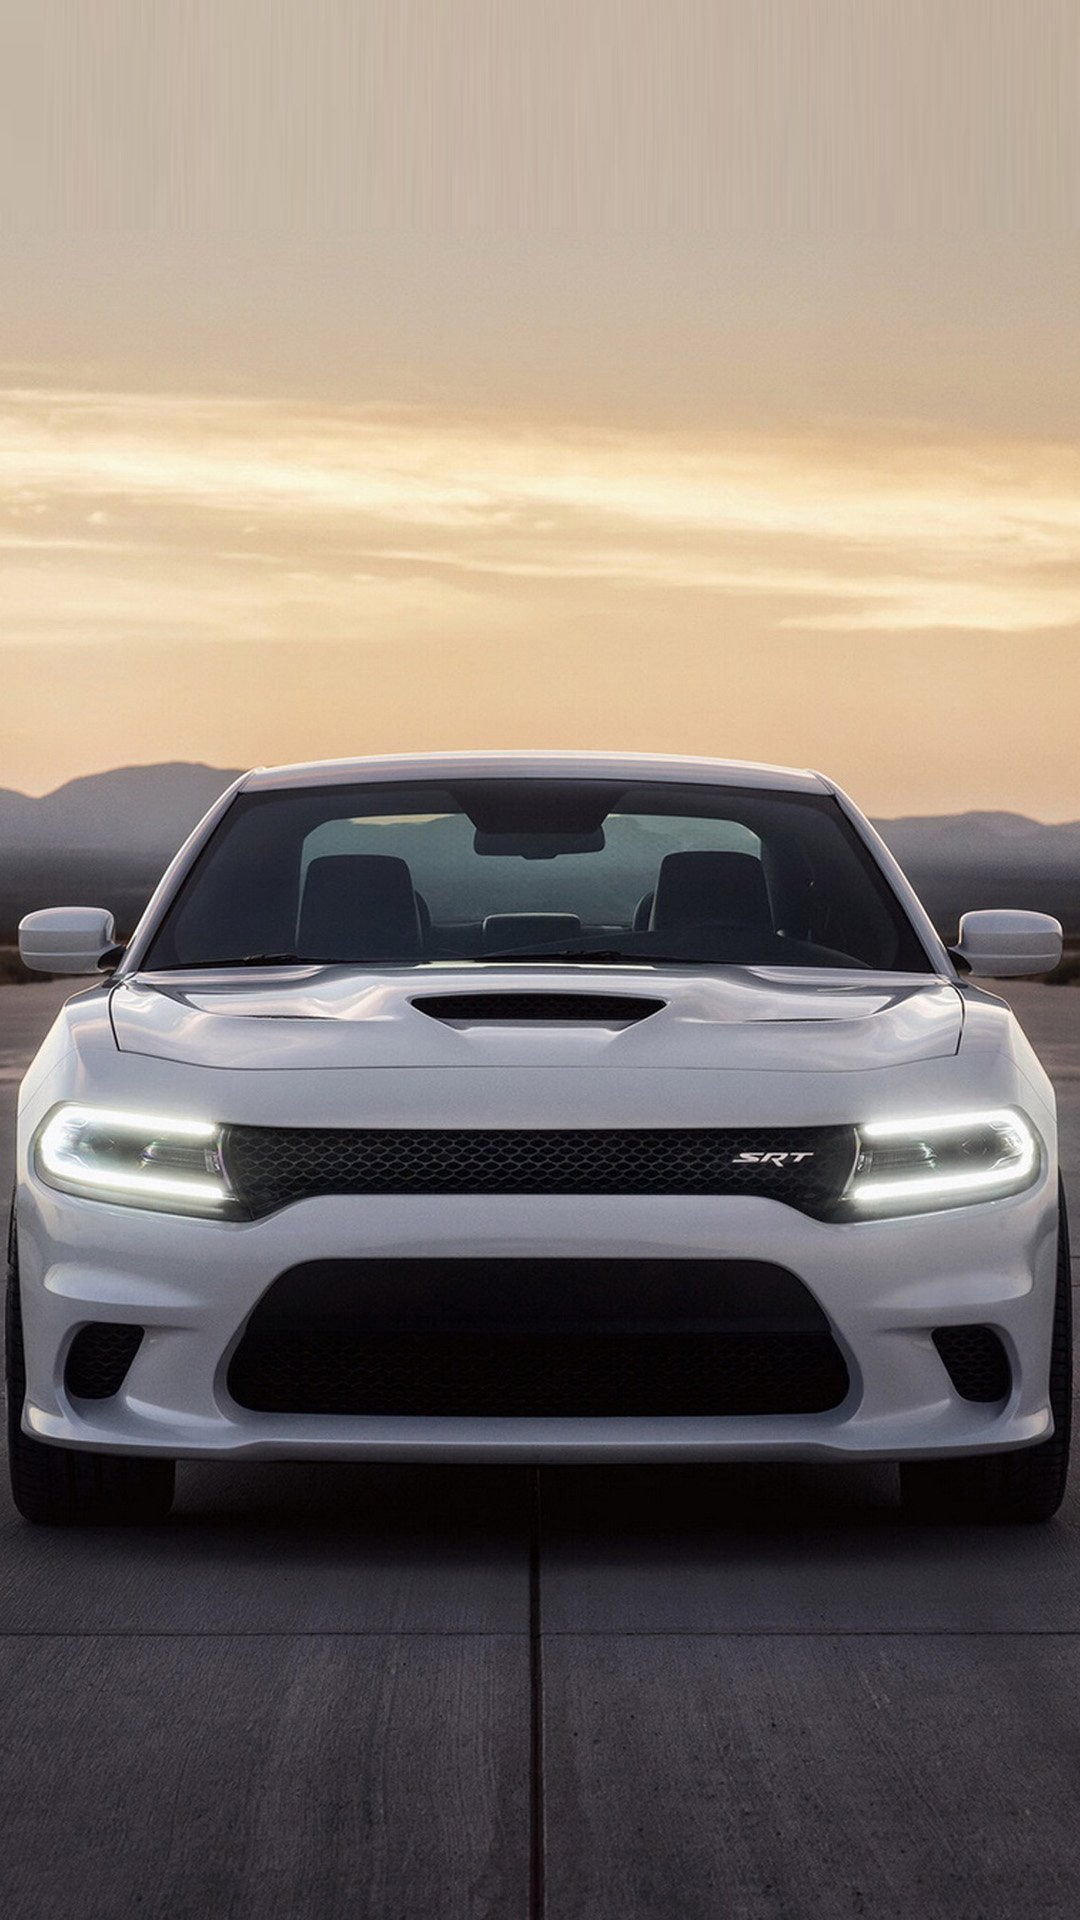 Hellcat Logo Wallpaper Iphone Wallpapersafari